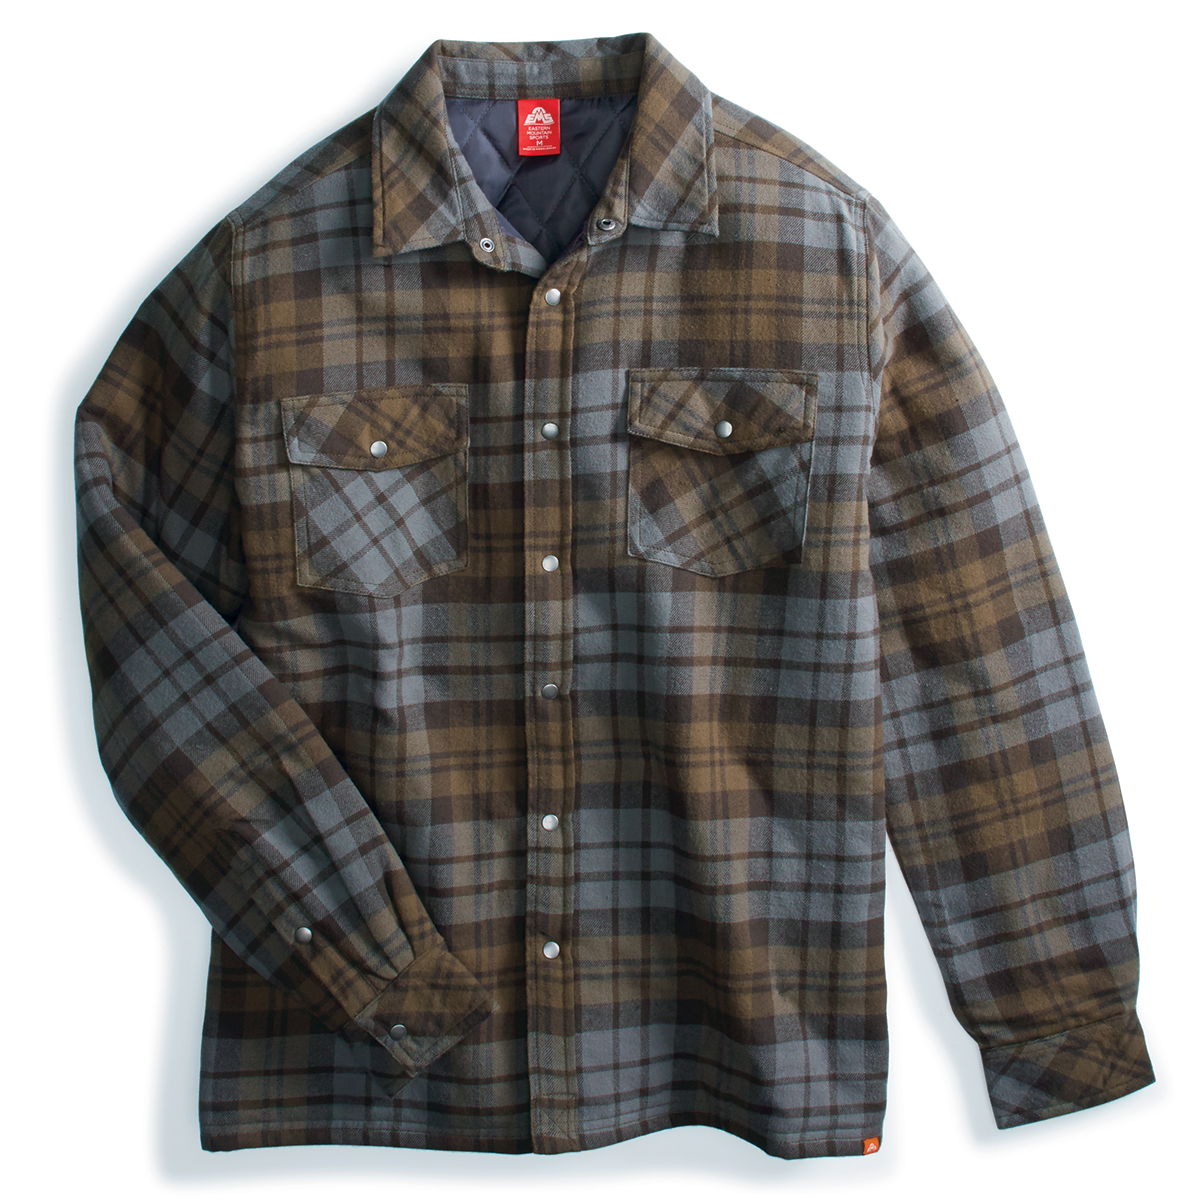 Ems Men's Timber Lined Flannel Shirt - Green, S